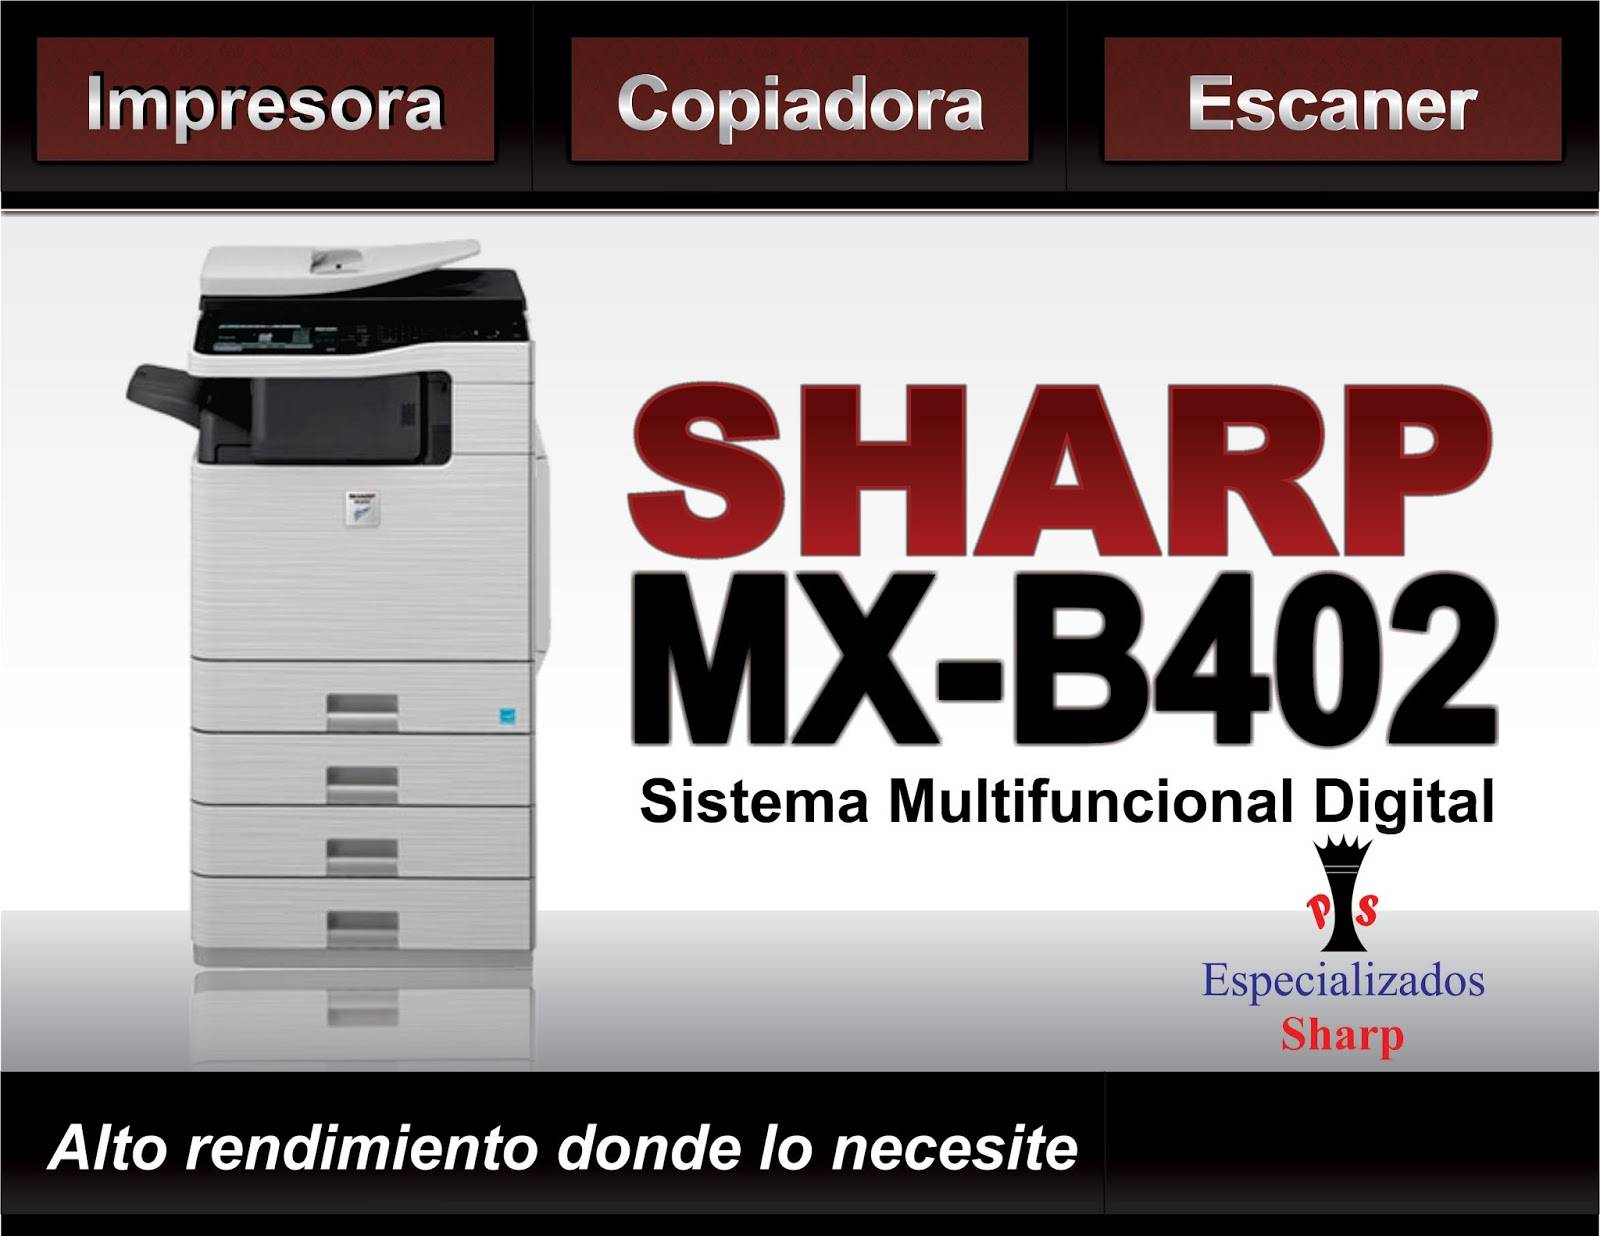 Mercado Libre Copiadoras Copiadora Sharp Mxb402sc Impresora Escaner Usb Copiadora